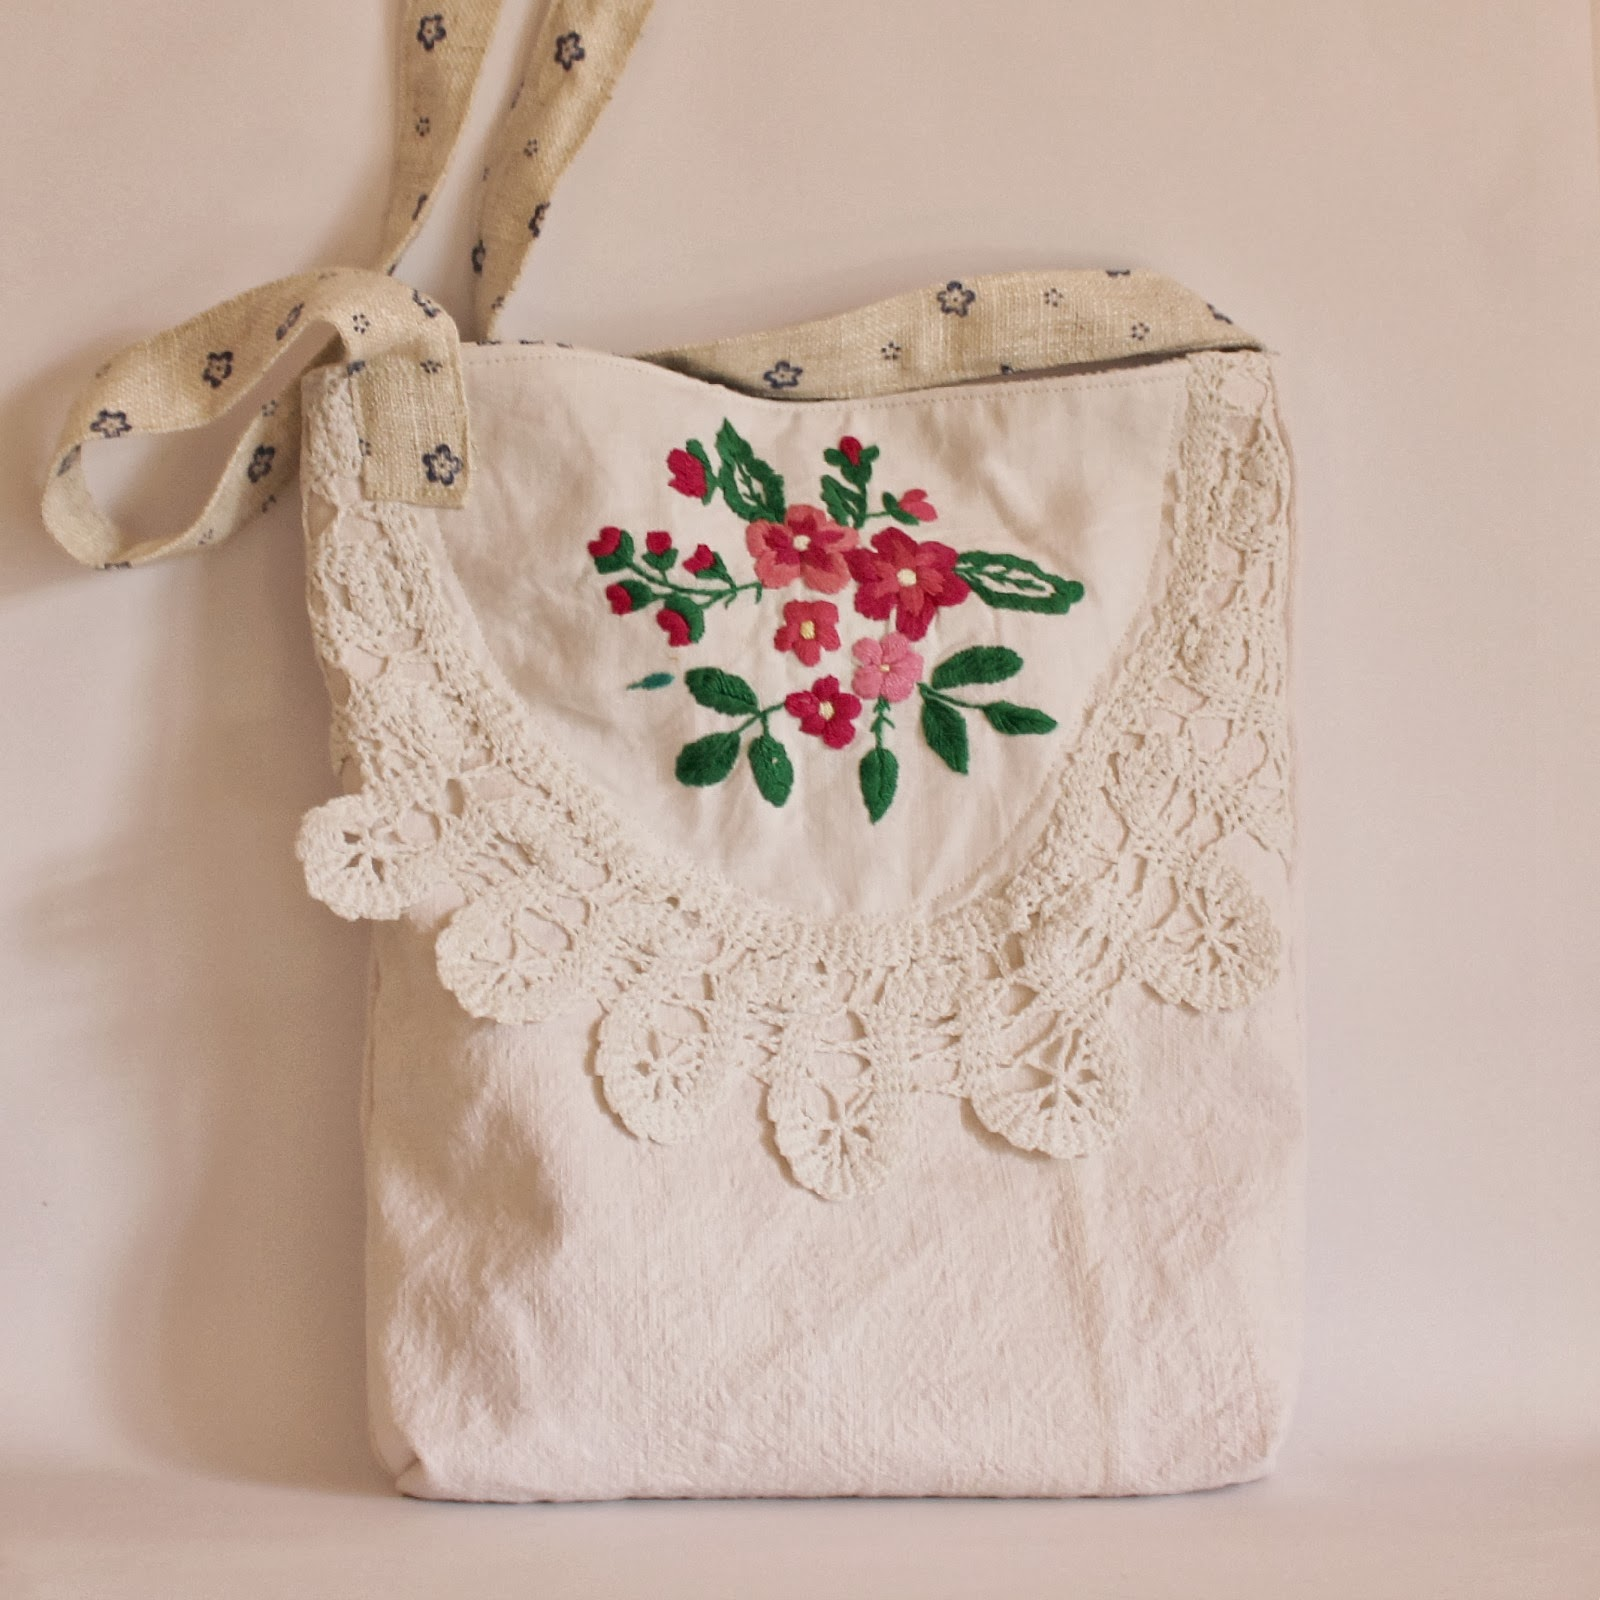 Roxy Creations Vintage Embroidery Bags